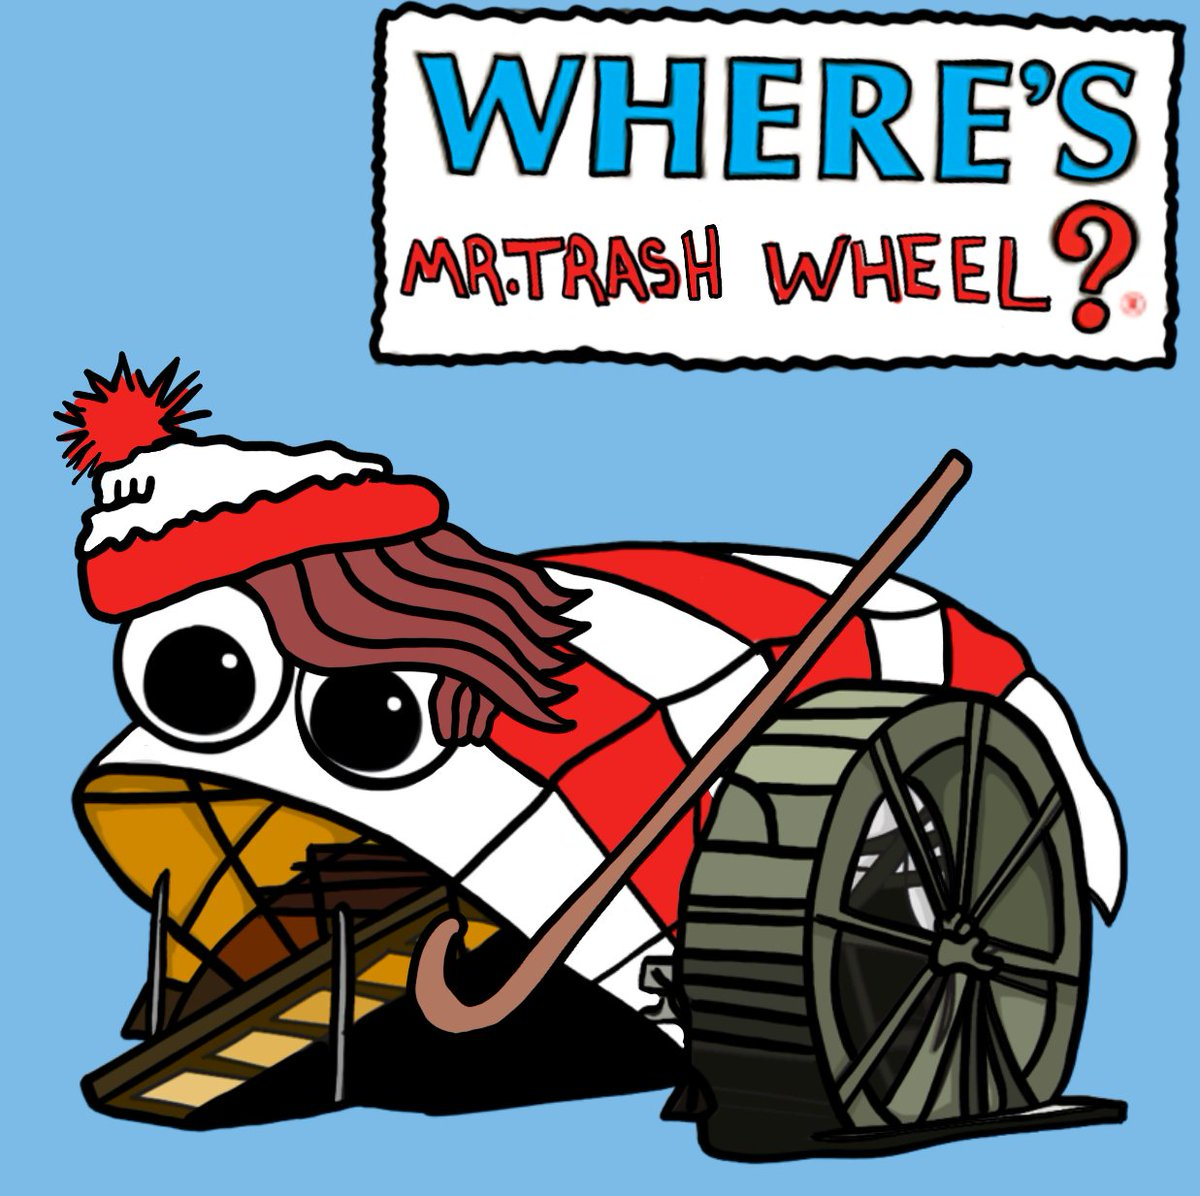 Where's Mr. Trash Wheel? You guys gave me some great cartoon costume ideas, this weekend's winner is (drum roll) Where's Waldo?